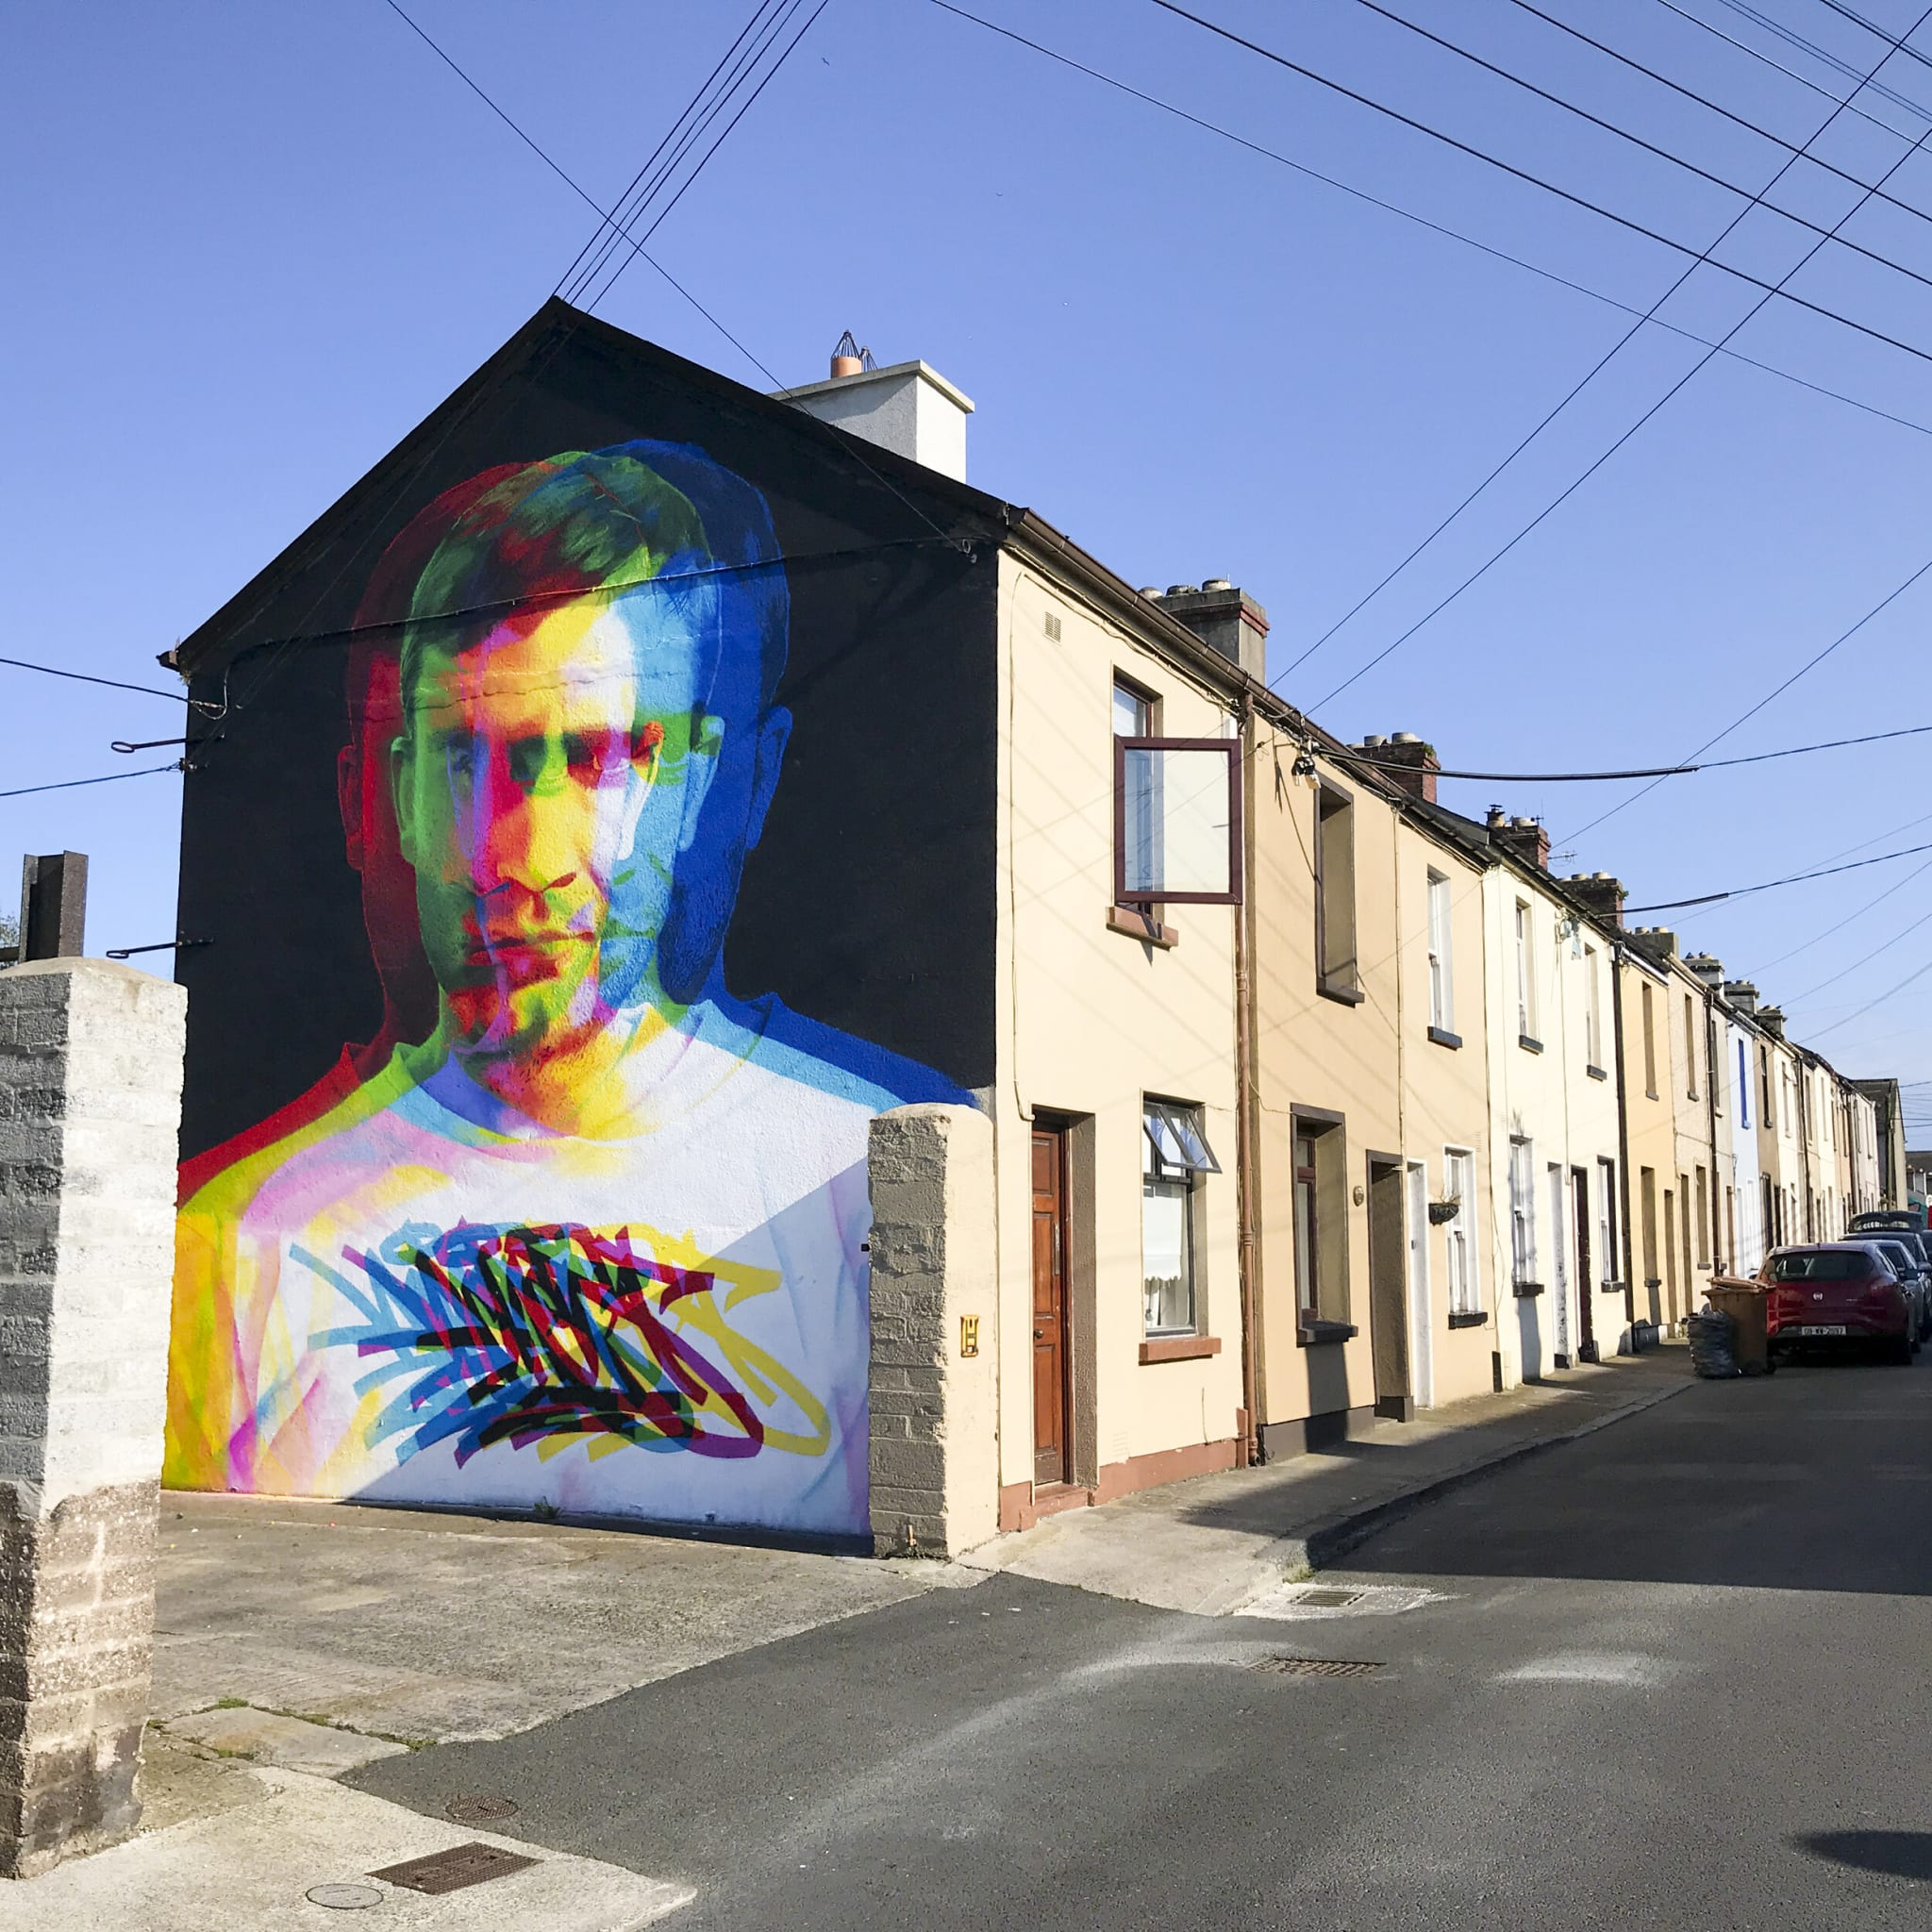 Artwork By Aches in Waterford, Waterford City